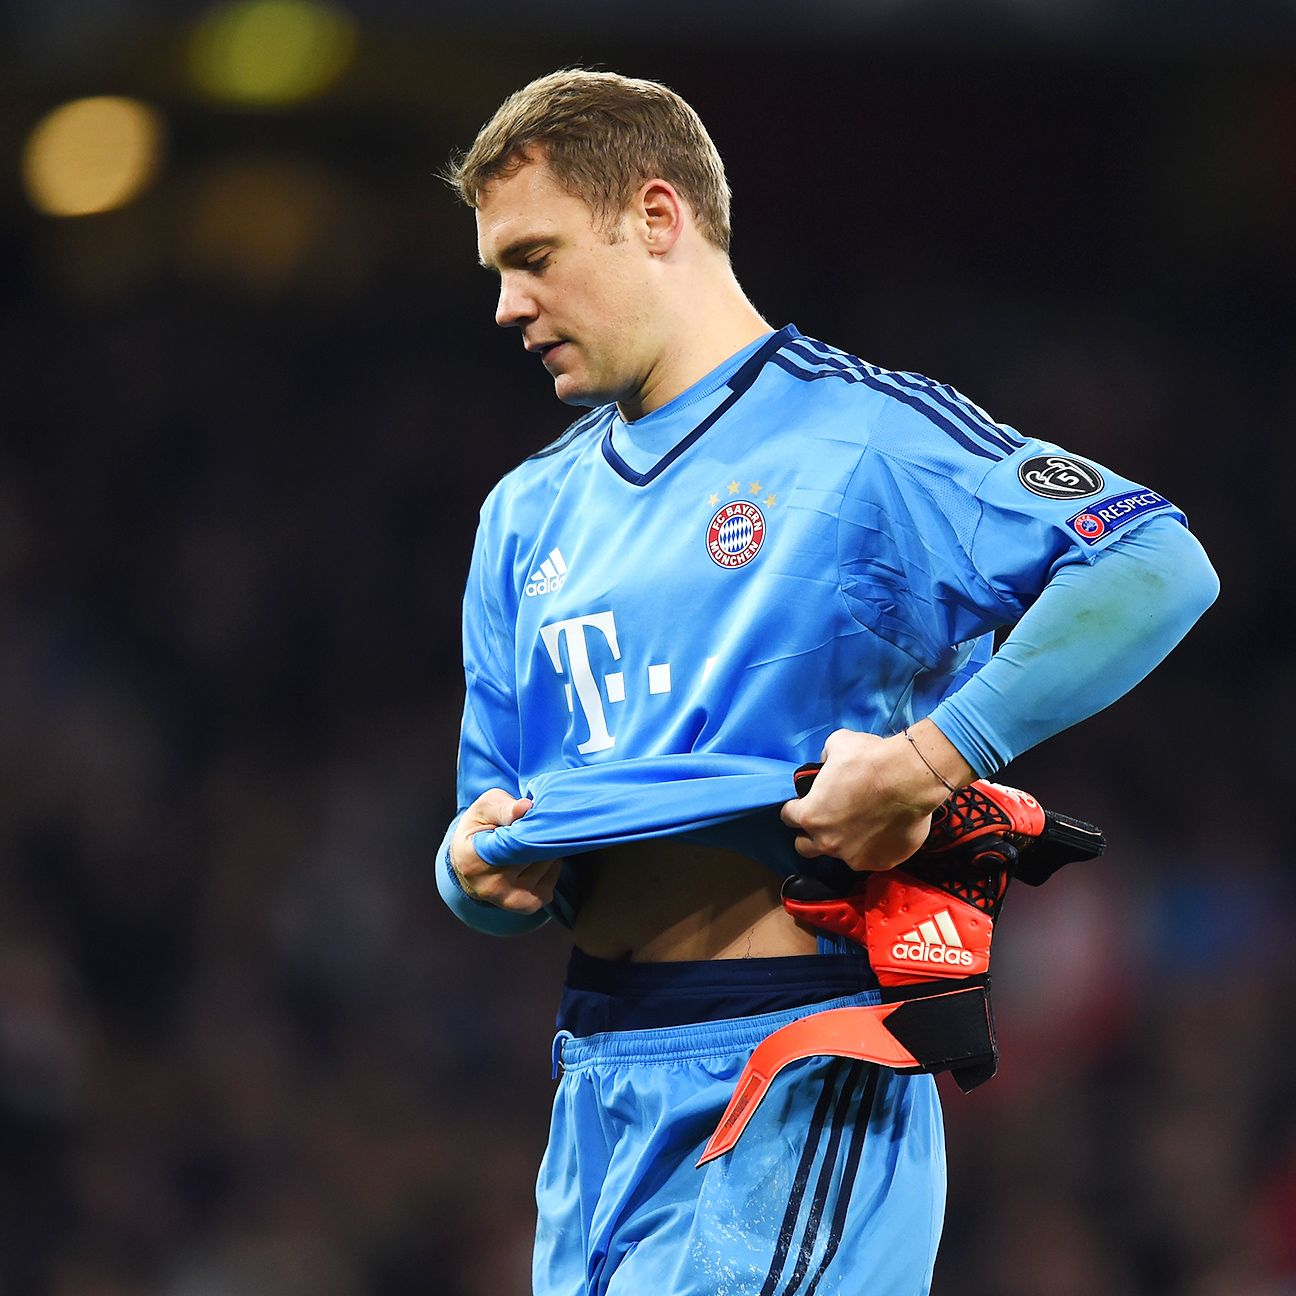 Bayern goalkeeper Manuel Neuer had his share of highs and lows on Tuesday night at The Emirates.